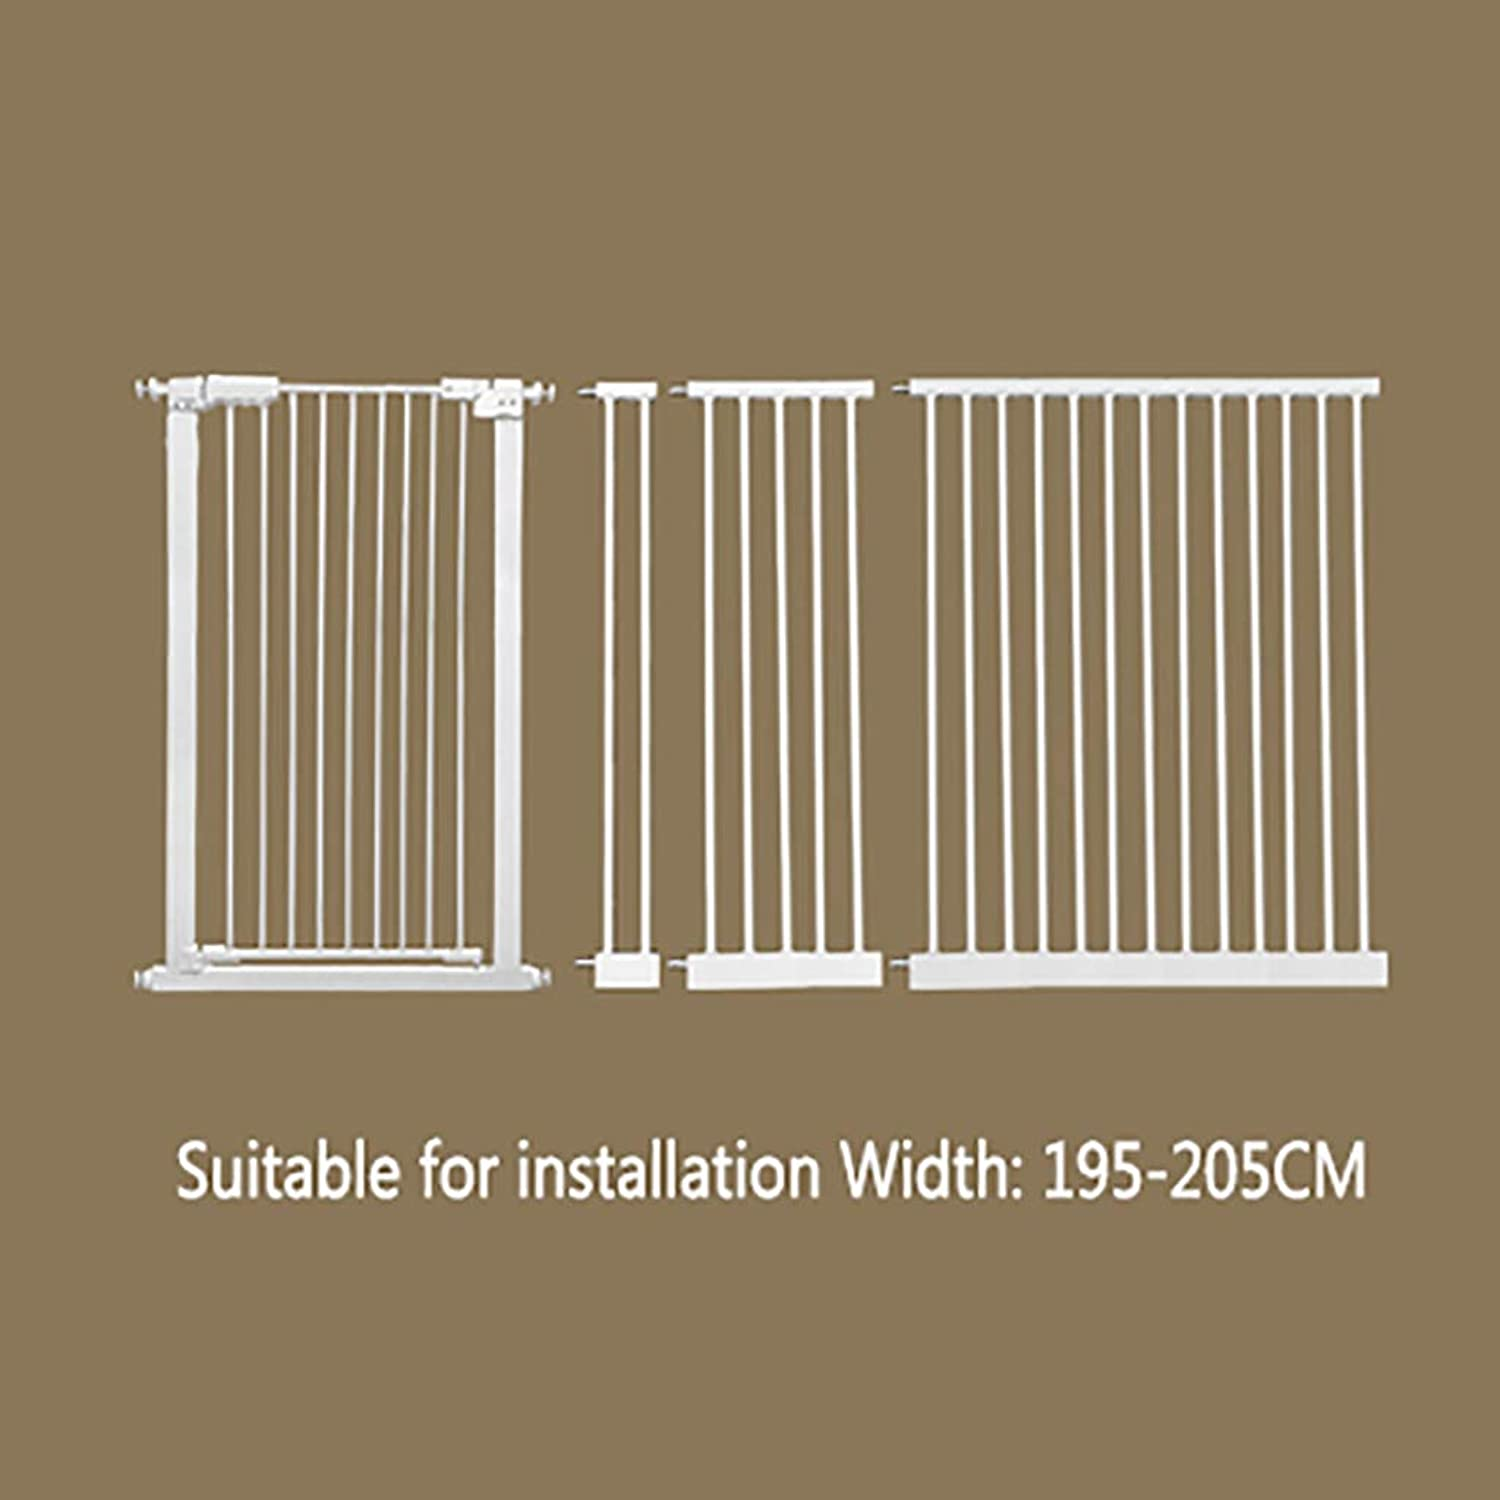 FPigSHS Pet gate Dog fence indoor Antidog isolation railing safety fence Cat and dog fence Isolation door Pet fence pet bed Detachable (color   W195205cm, Size   H 110CM)